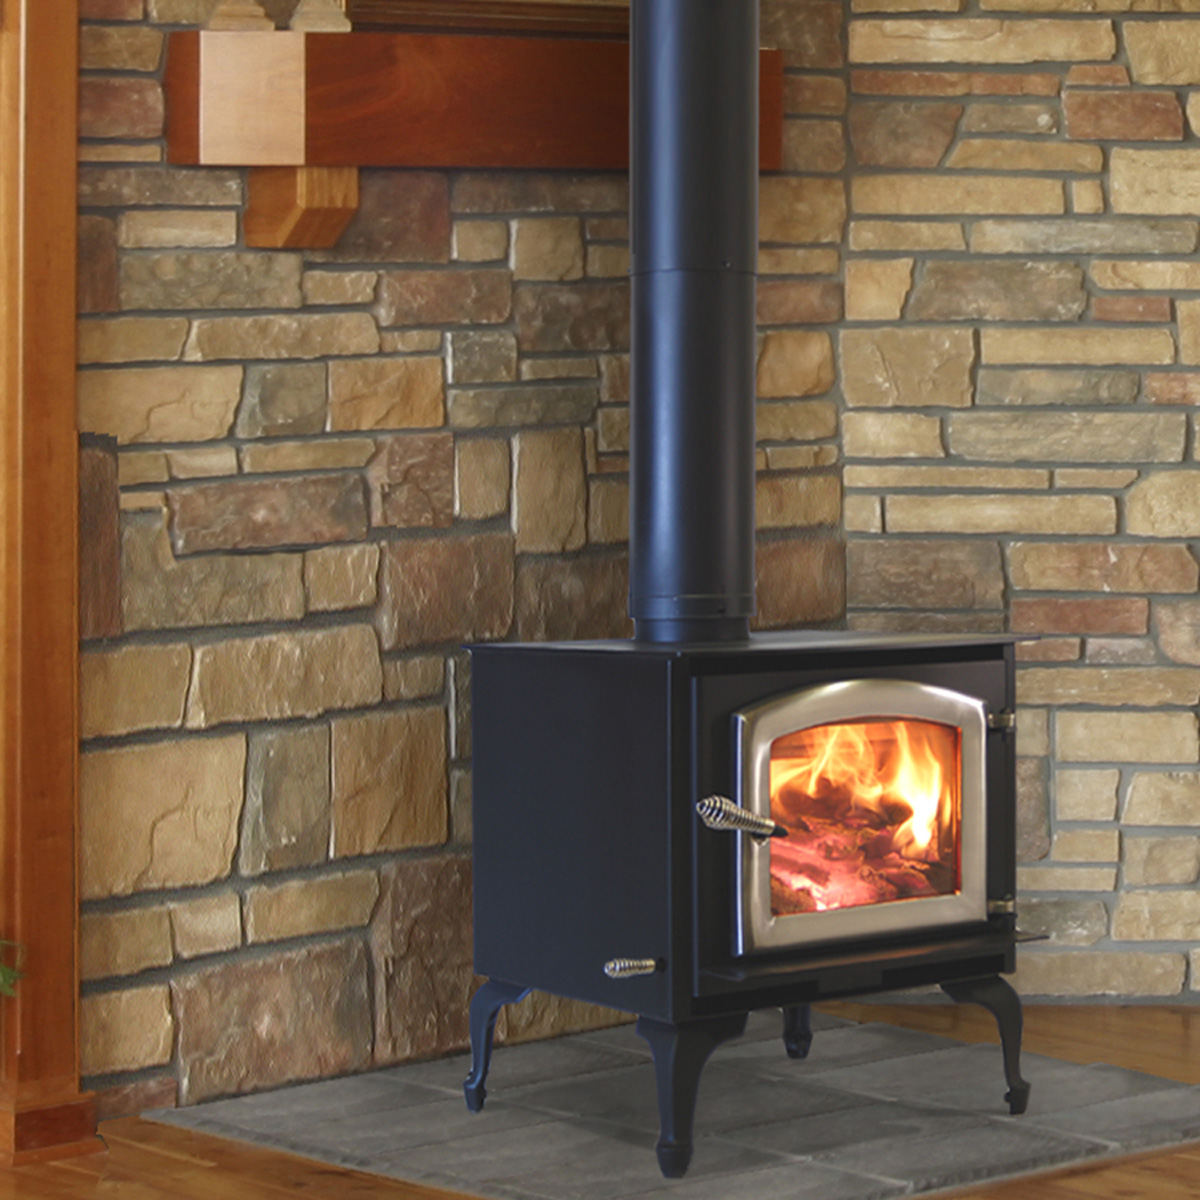 Kuma Aspen wood stove, made in the USA